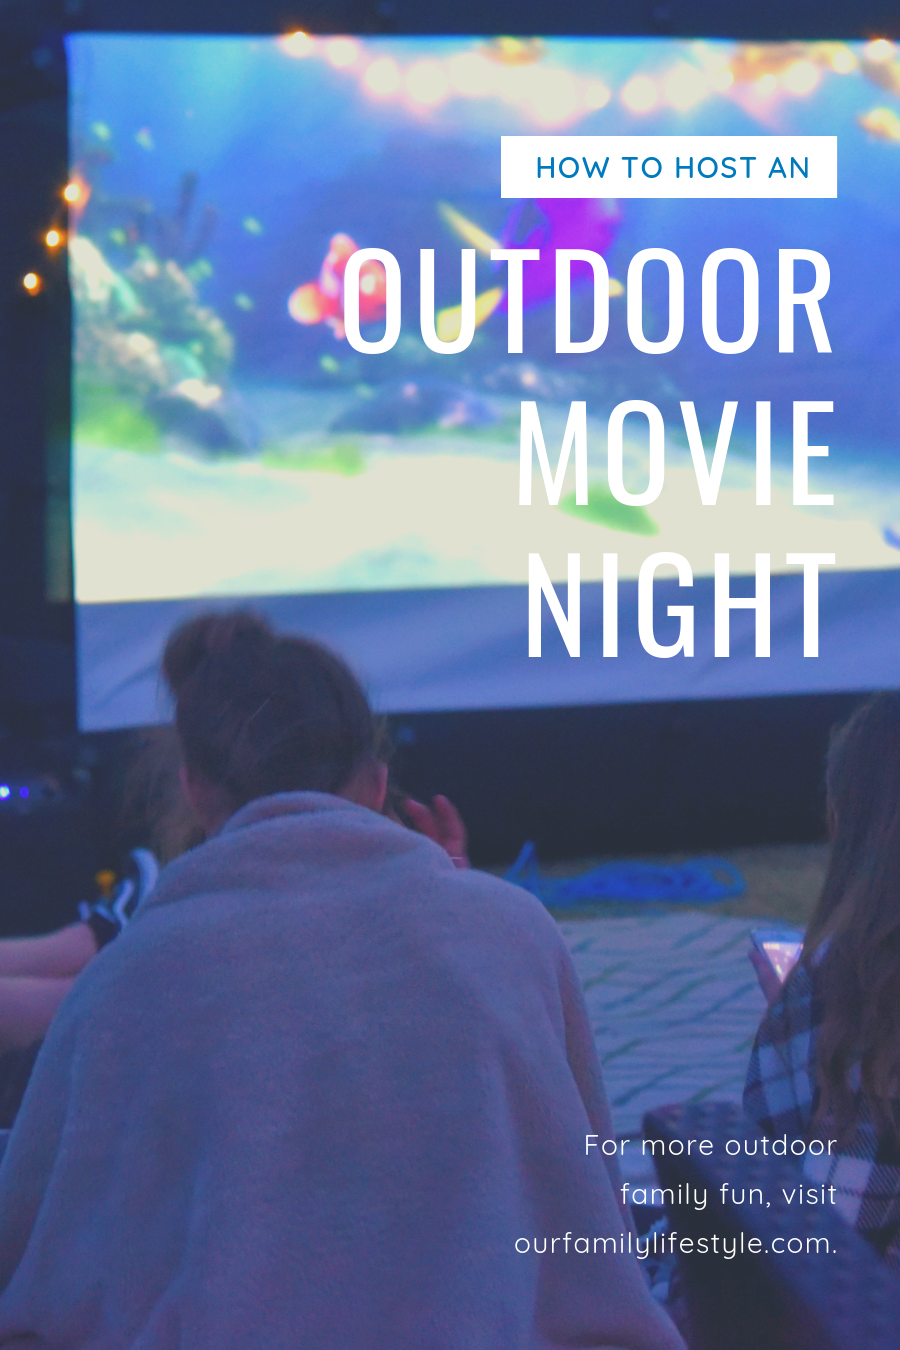 How to Host an Outdoor Movie Night